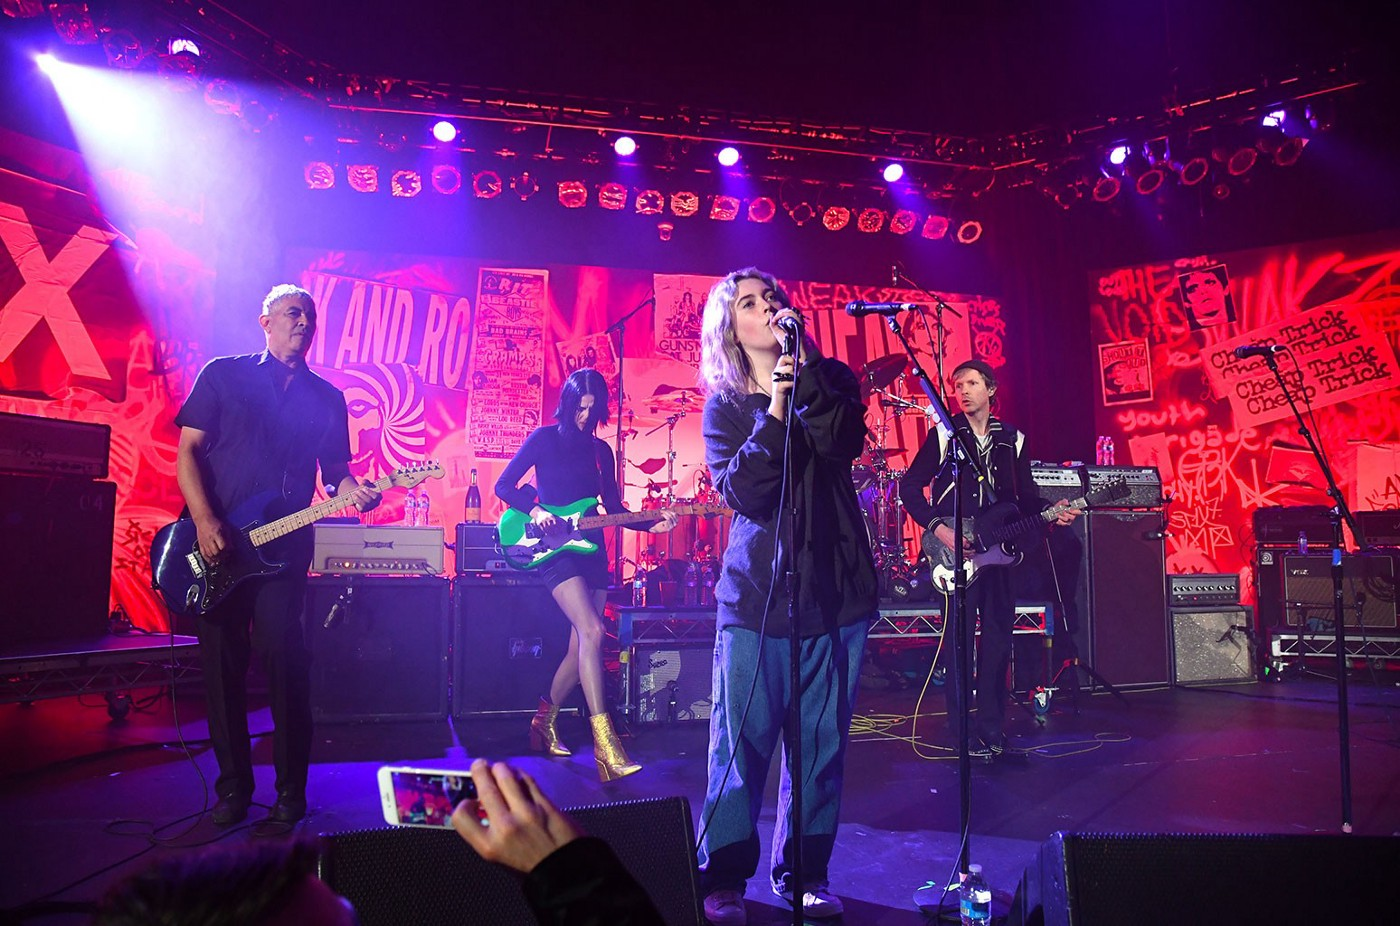 Colored photograph by Kevin Mazur/Getty Images for DG. Violet Grohl, Dave Grohl, Beck, St. Vincent, Krist Novoselic and Pat Smear perform onstage during The Art of Elysium and We are Here Present Heaven is Rock and Roll at Hollywood Palladium on Jan. 4, 2020 in Los Angeles.